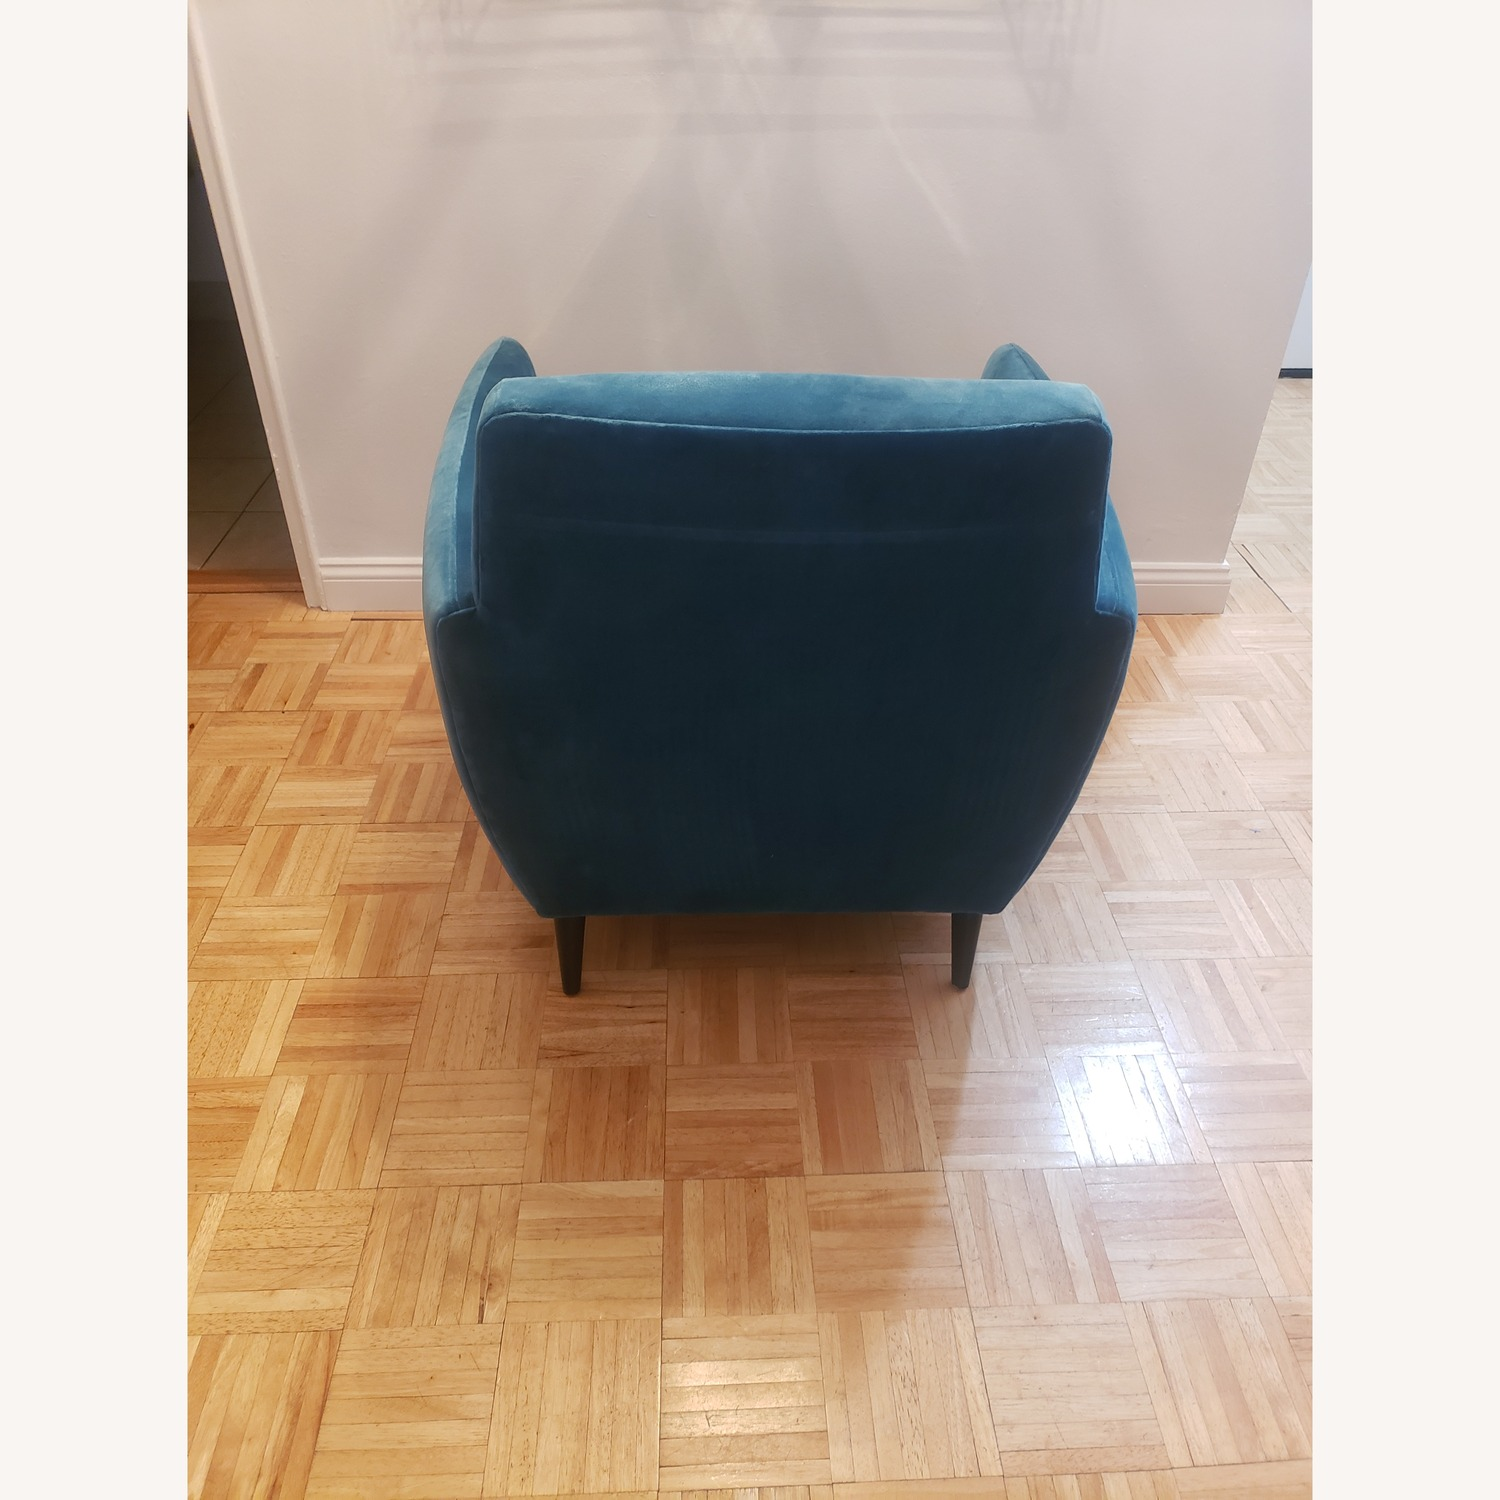 CB2 Parlour Chair in Cyan (Blue) Velvet - image-6